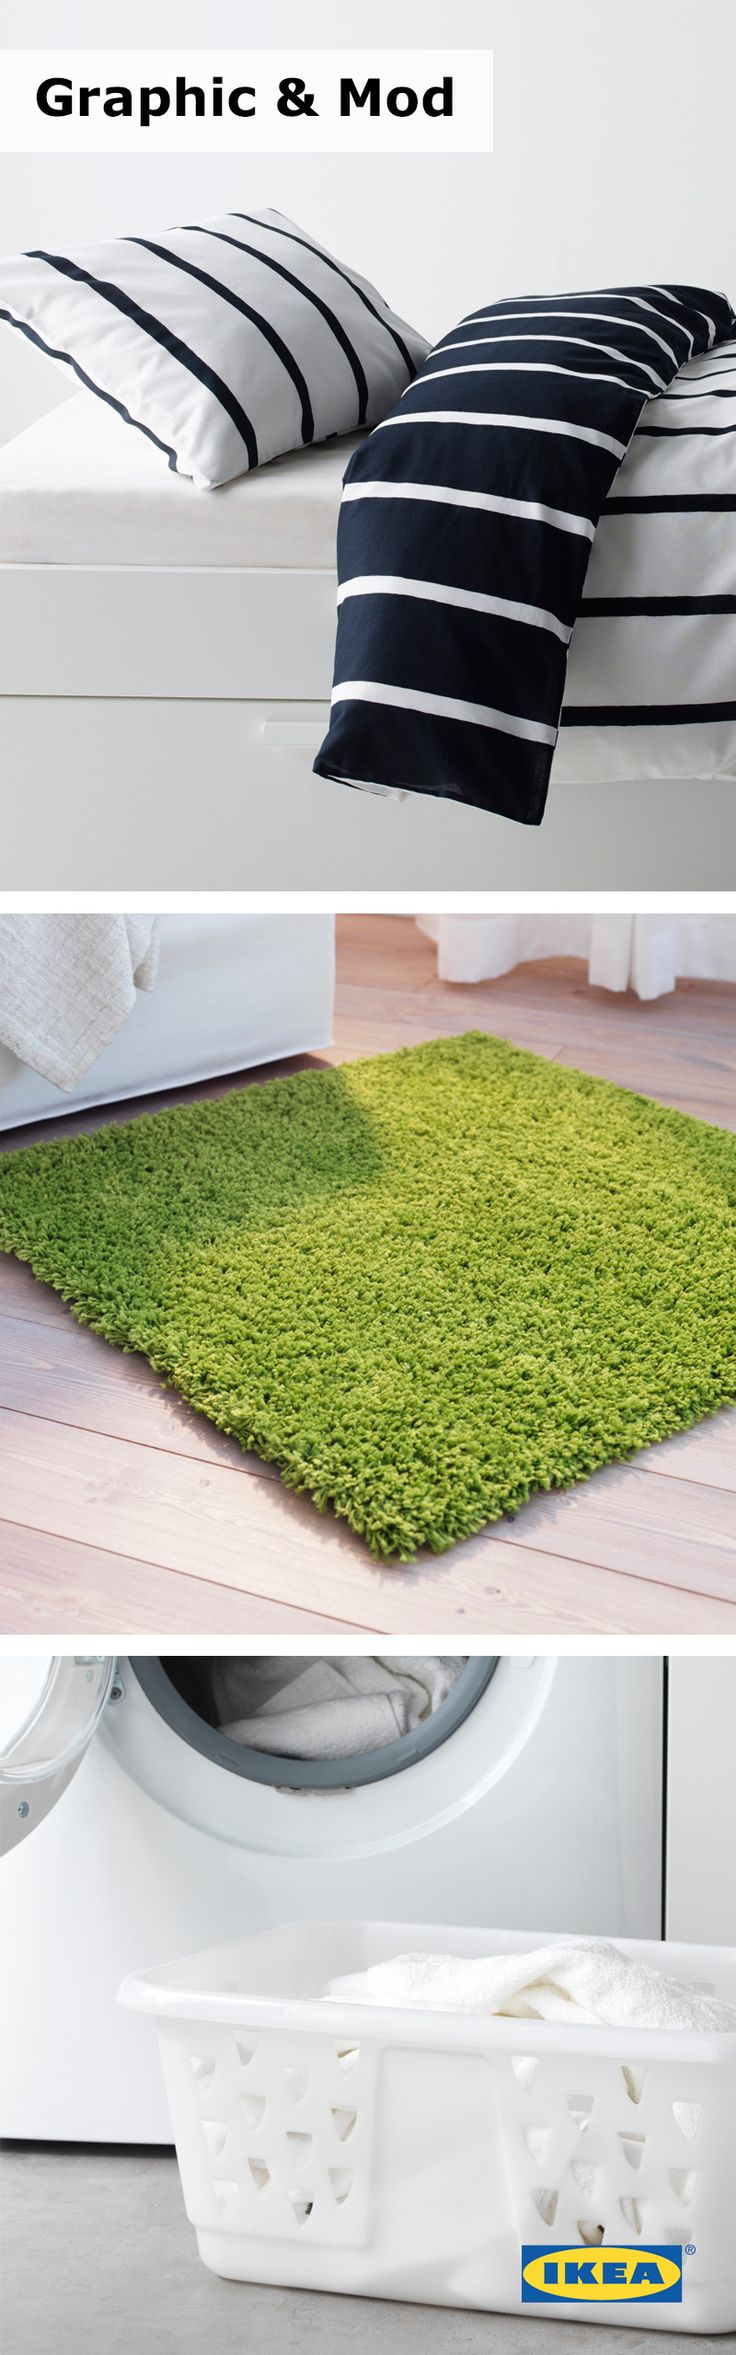 17 best images about farmhouse chic on pinterest for Ikea grass rug